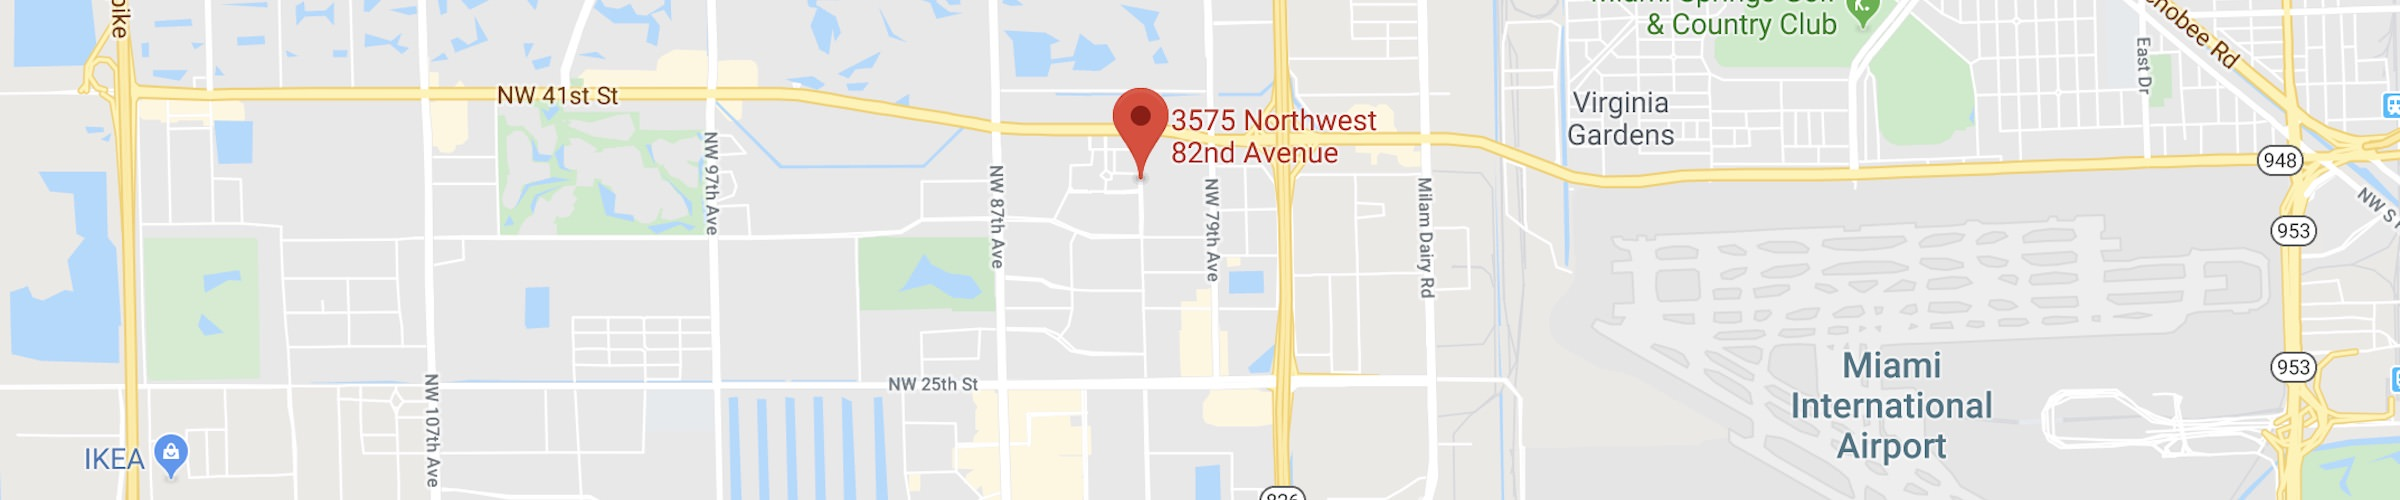 3575 NW 82nd Ave, Doral, Florida - Power Tech Supply Inc.